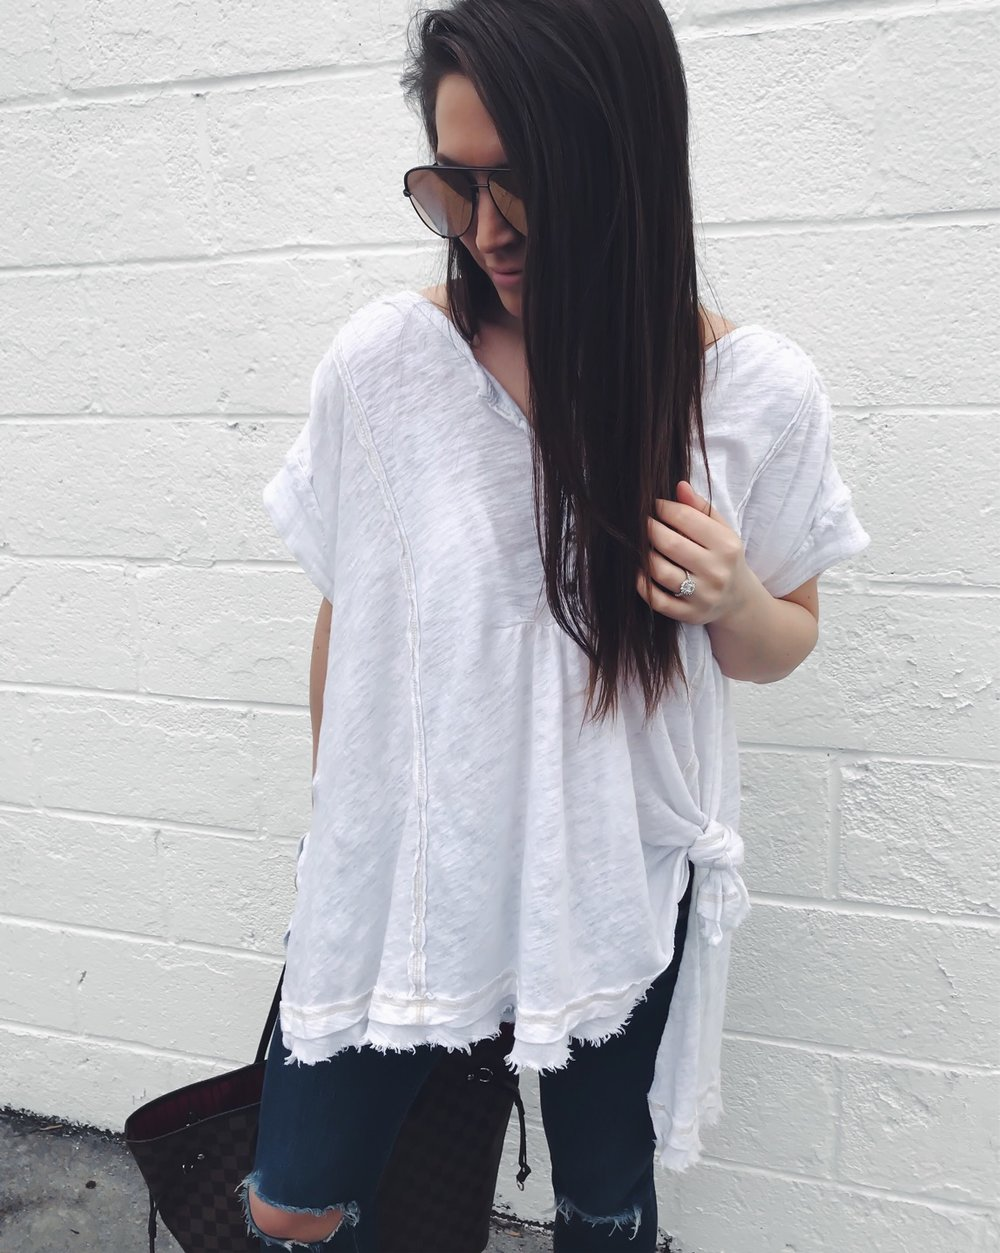 Instagram Round Up | Pine Barren Beauty | free people tee, basic white tee, summer outfit idea